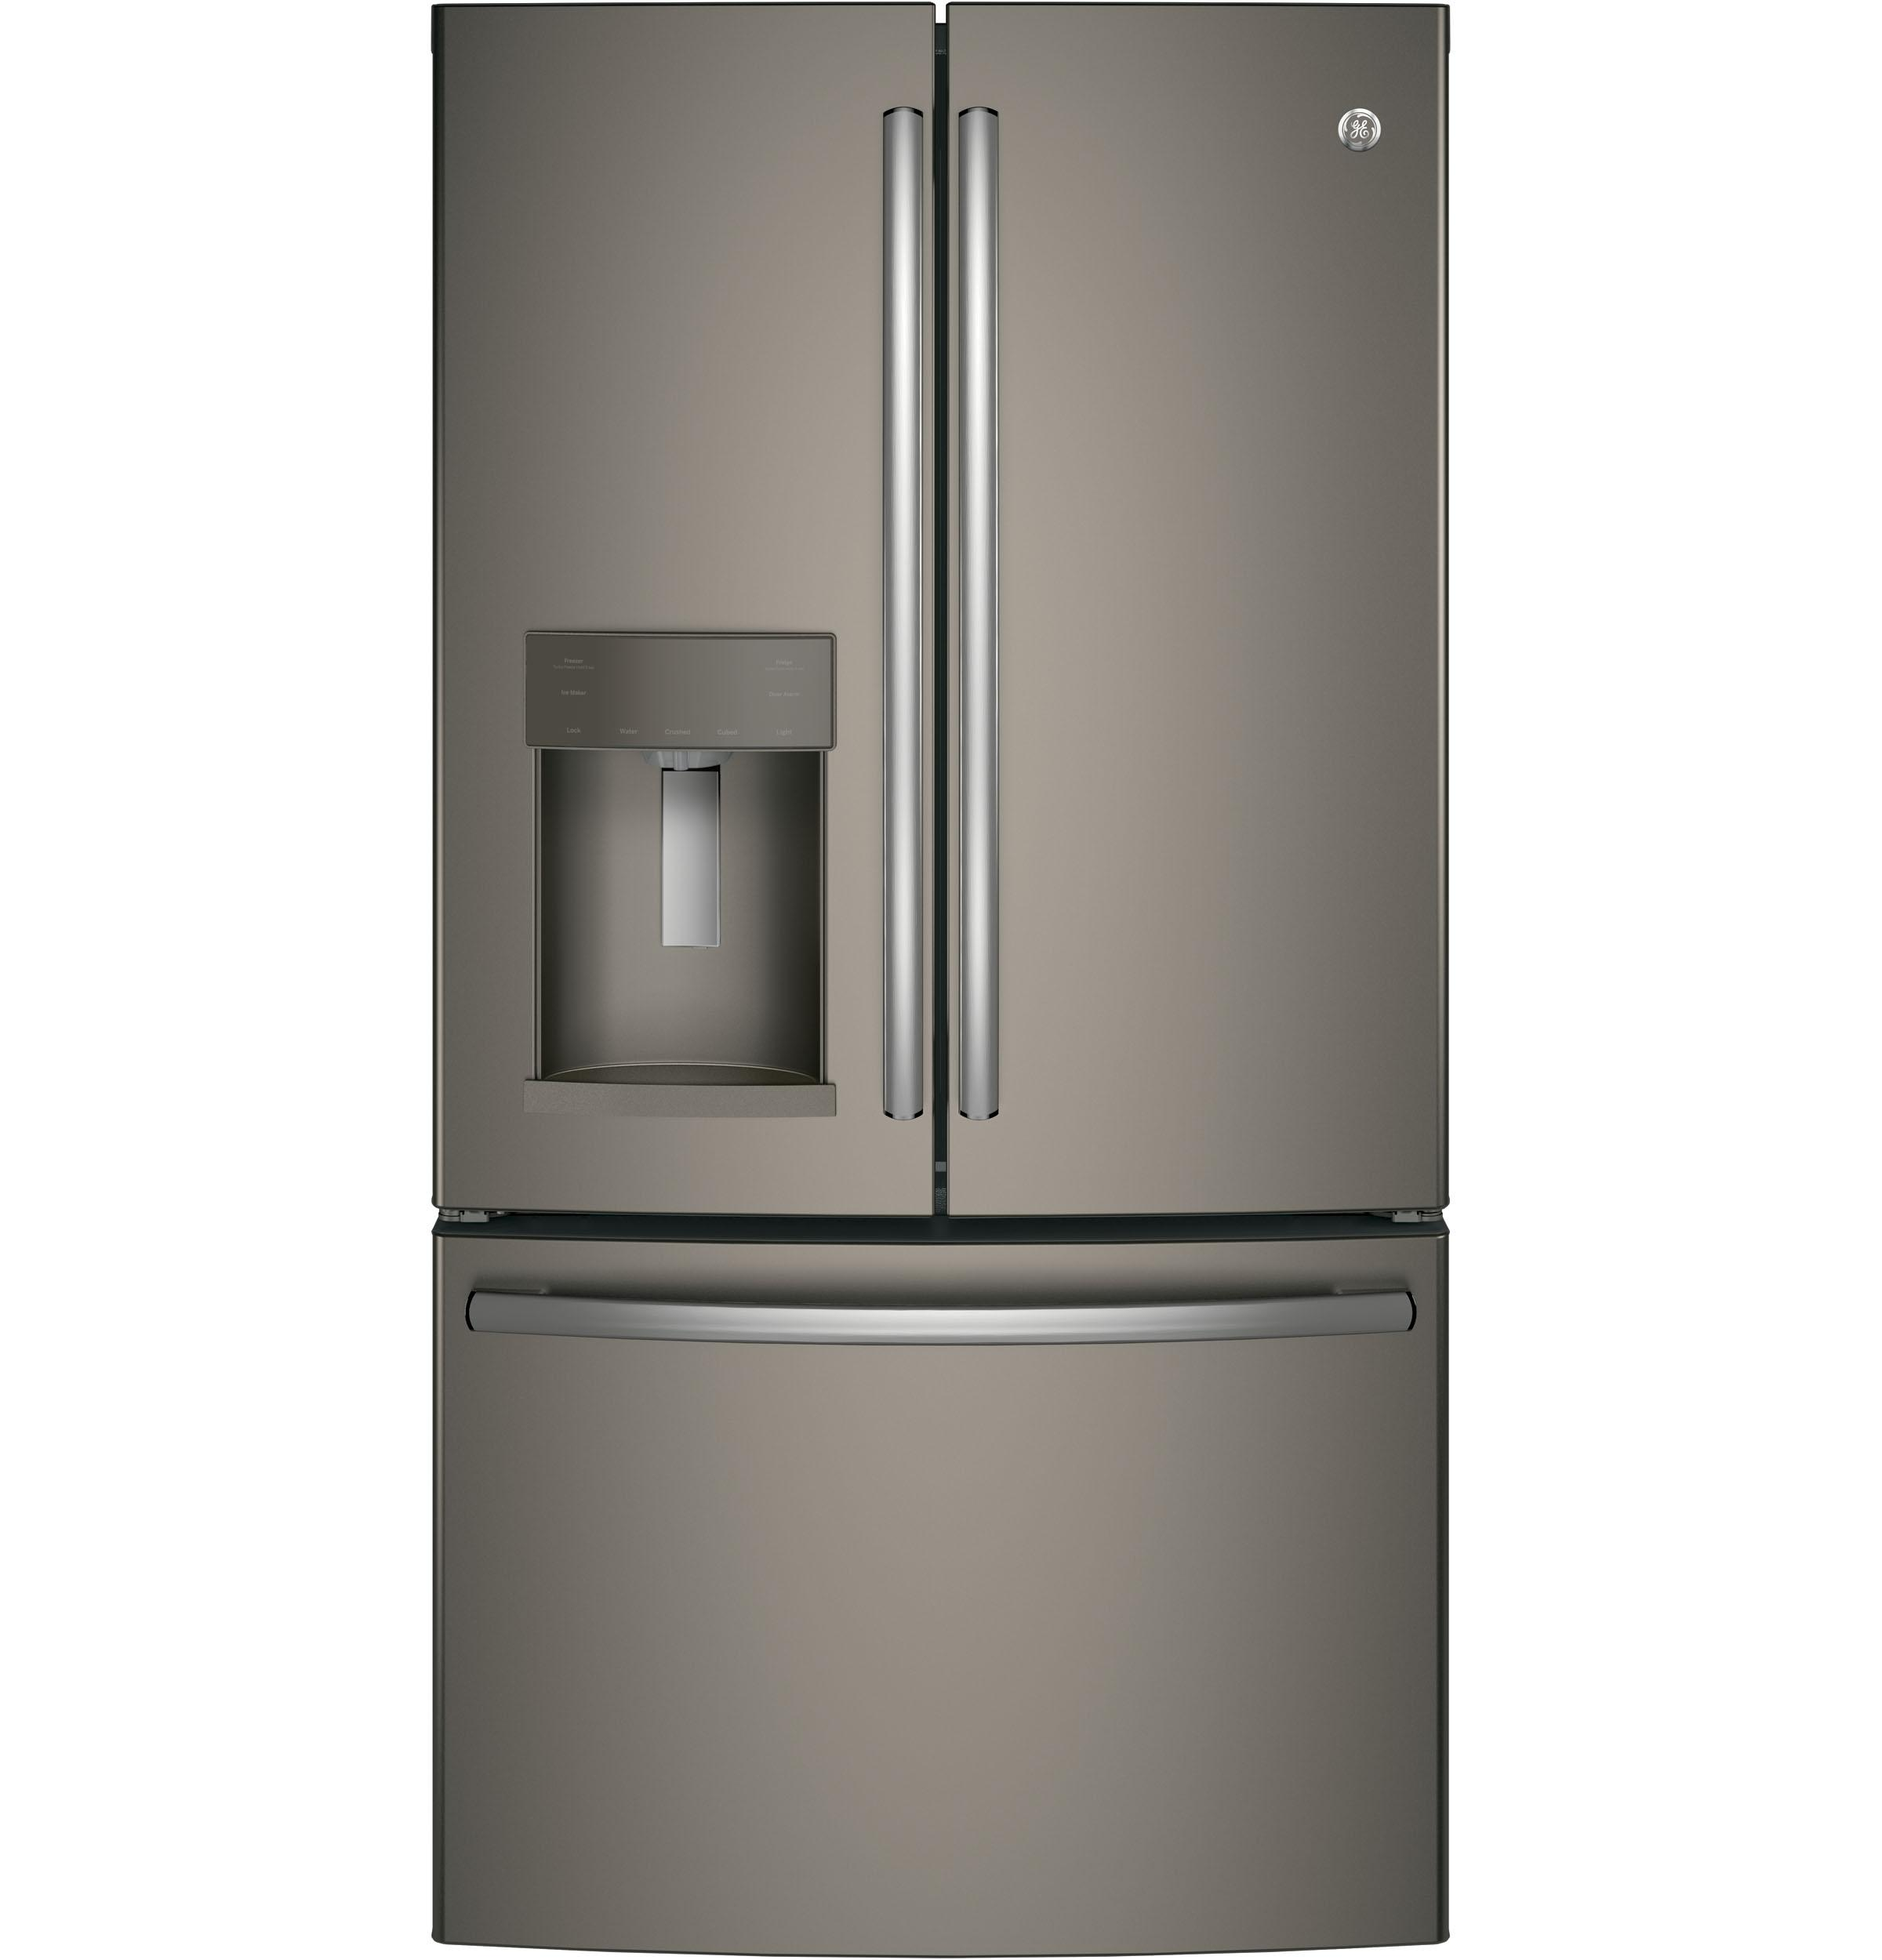 GE(R) ENERGY STAR(R) 27.8 Cu. Ft. French-Door Refrigerator SLATE